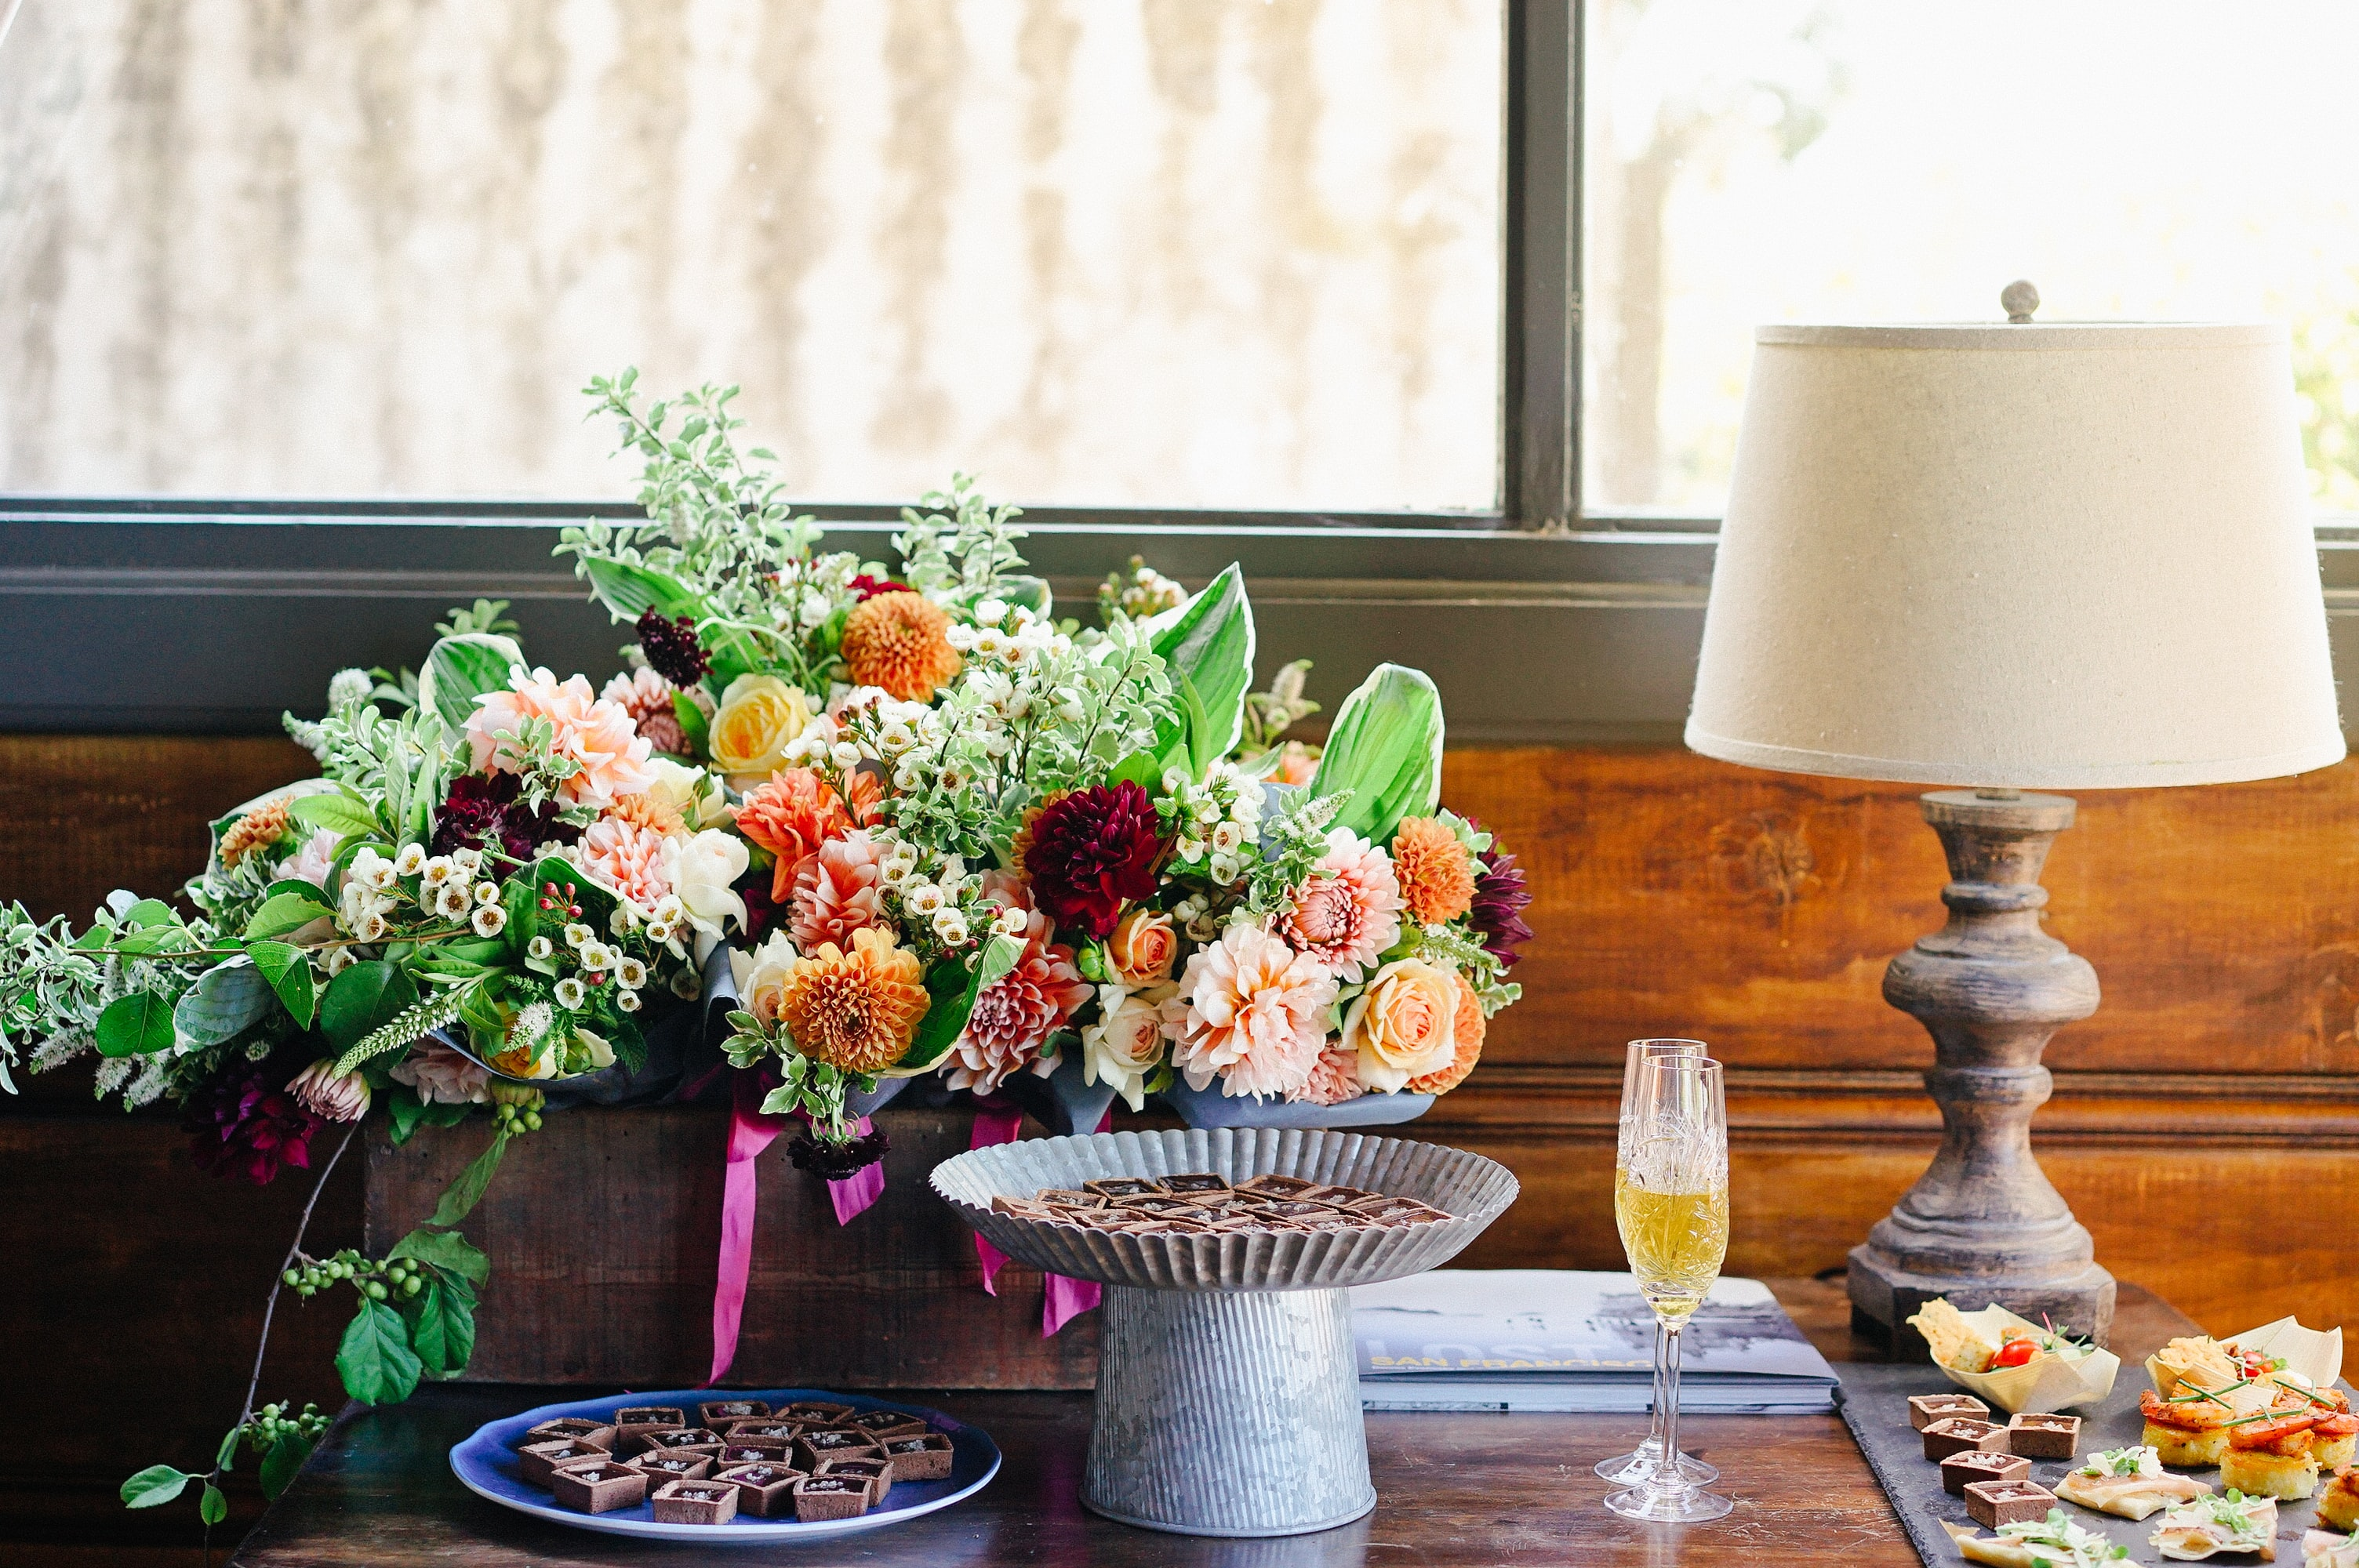 pink and orange flowers in vase near white table lamp